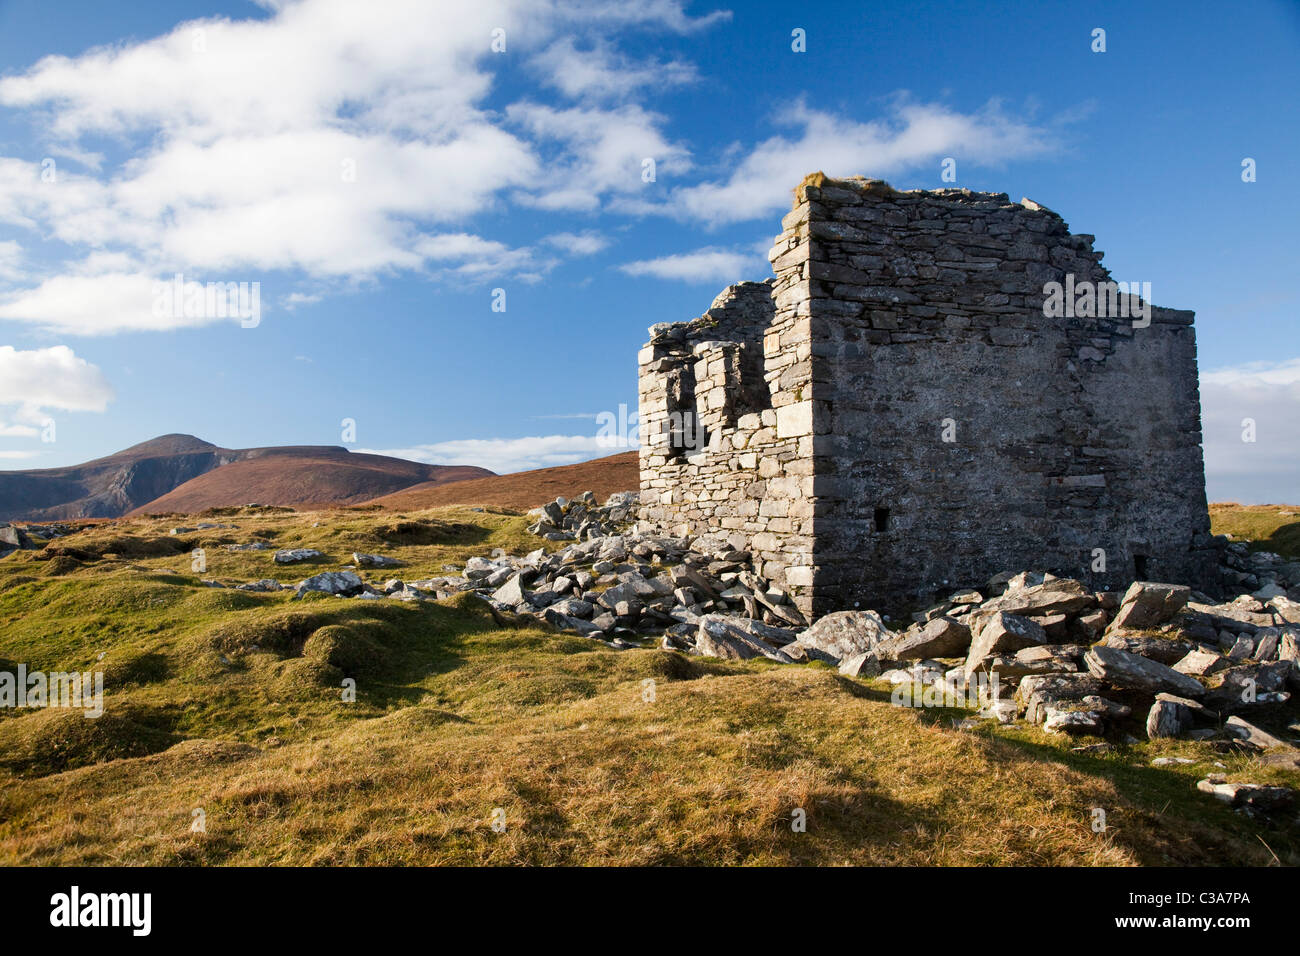 Ruined Napoleonic signal tower at the summit of point 194m, Achill Island, County Mayo, Ireland. - Stock Image